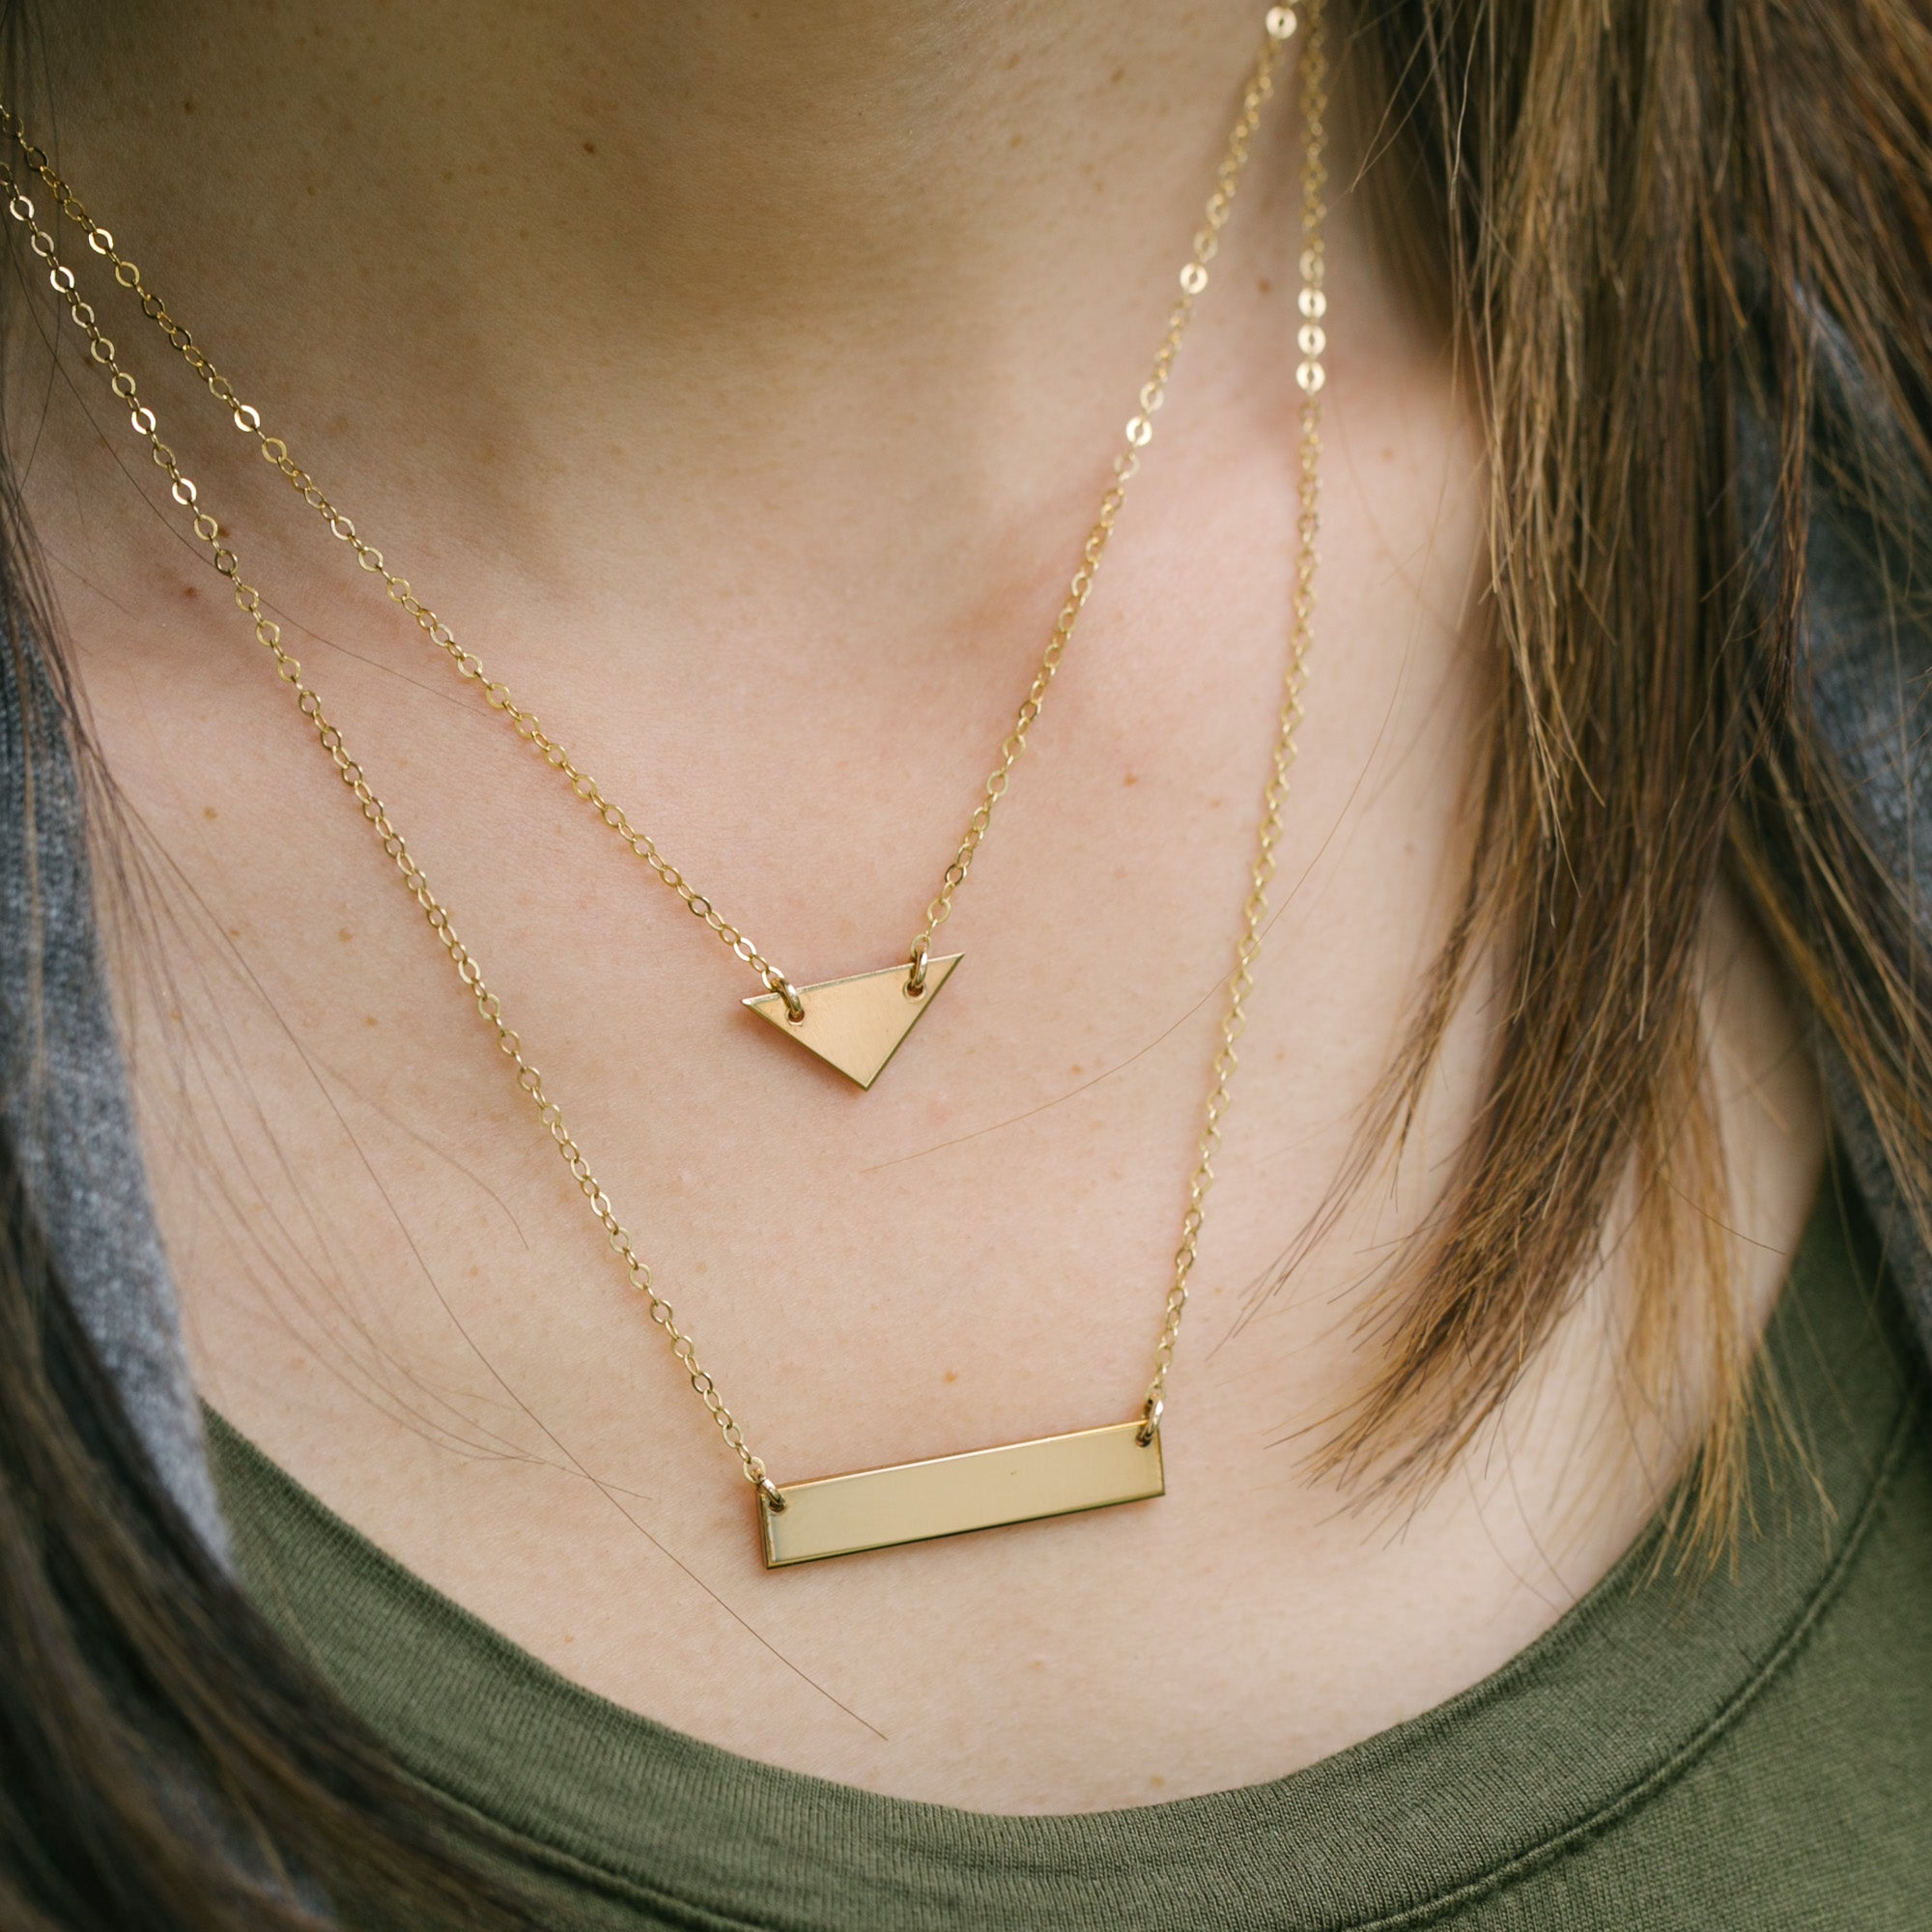 gold suzanne suzanna necklace kalan yellow mini bar